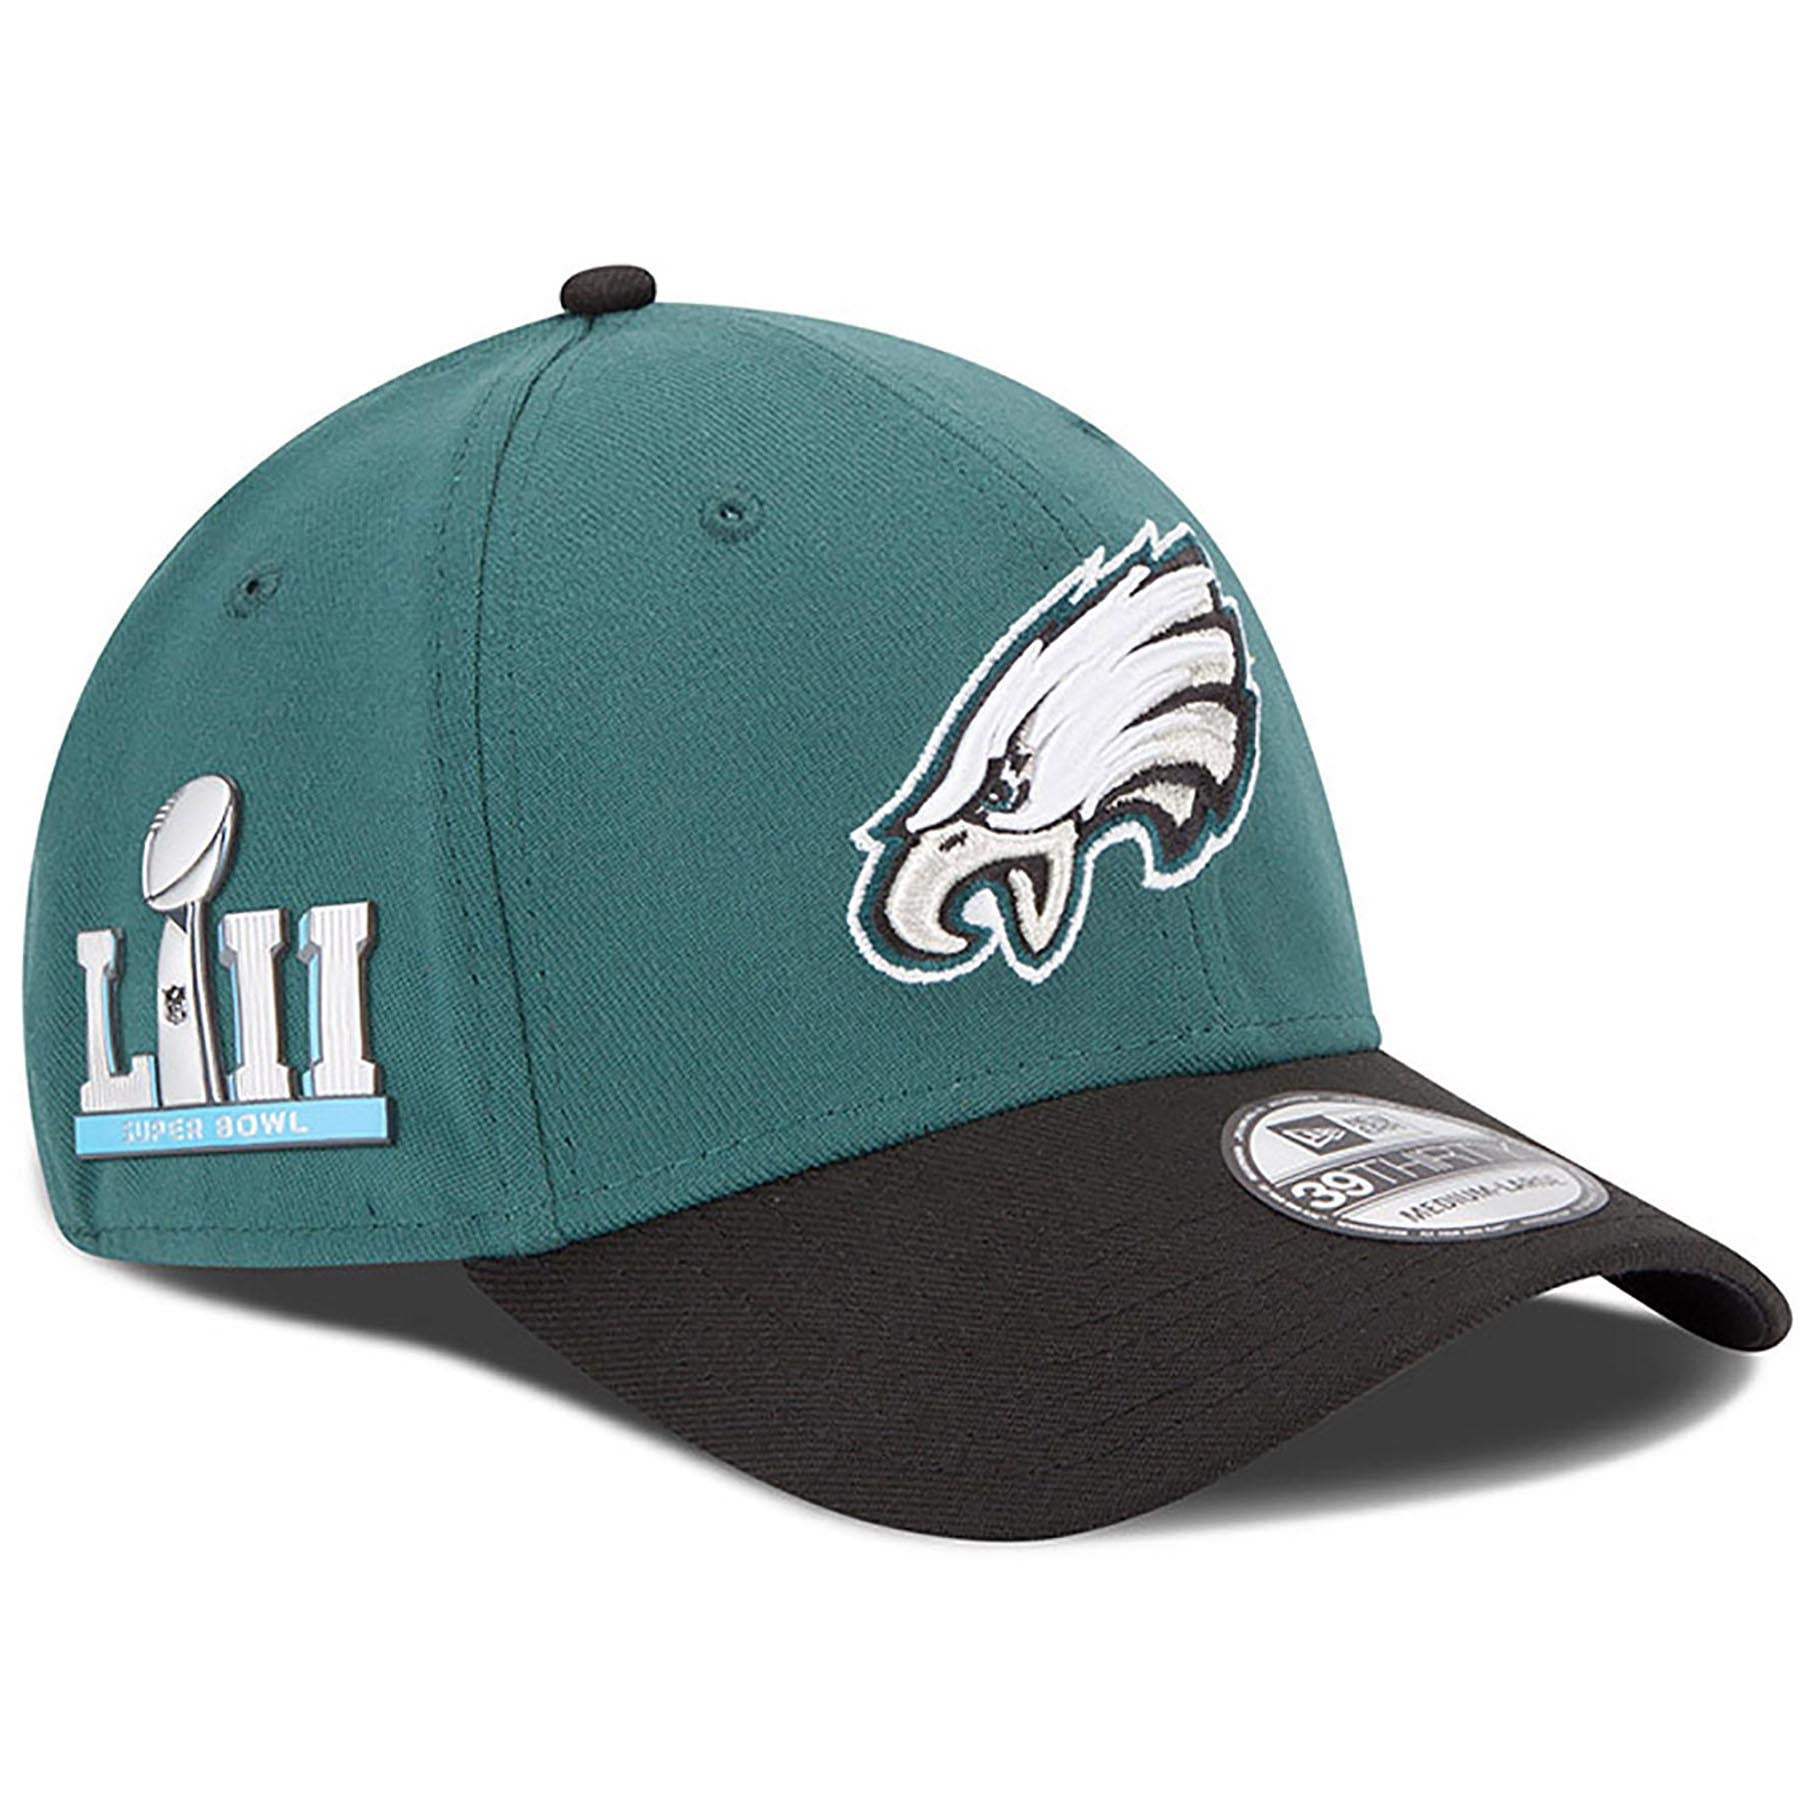 8e491f1d the right side of the Philadelphia Eagles Superbowl LII stretch fit cap has  the superbowl LII